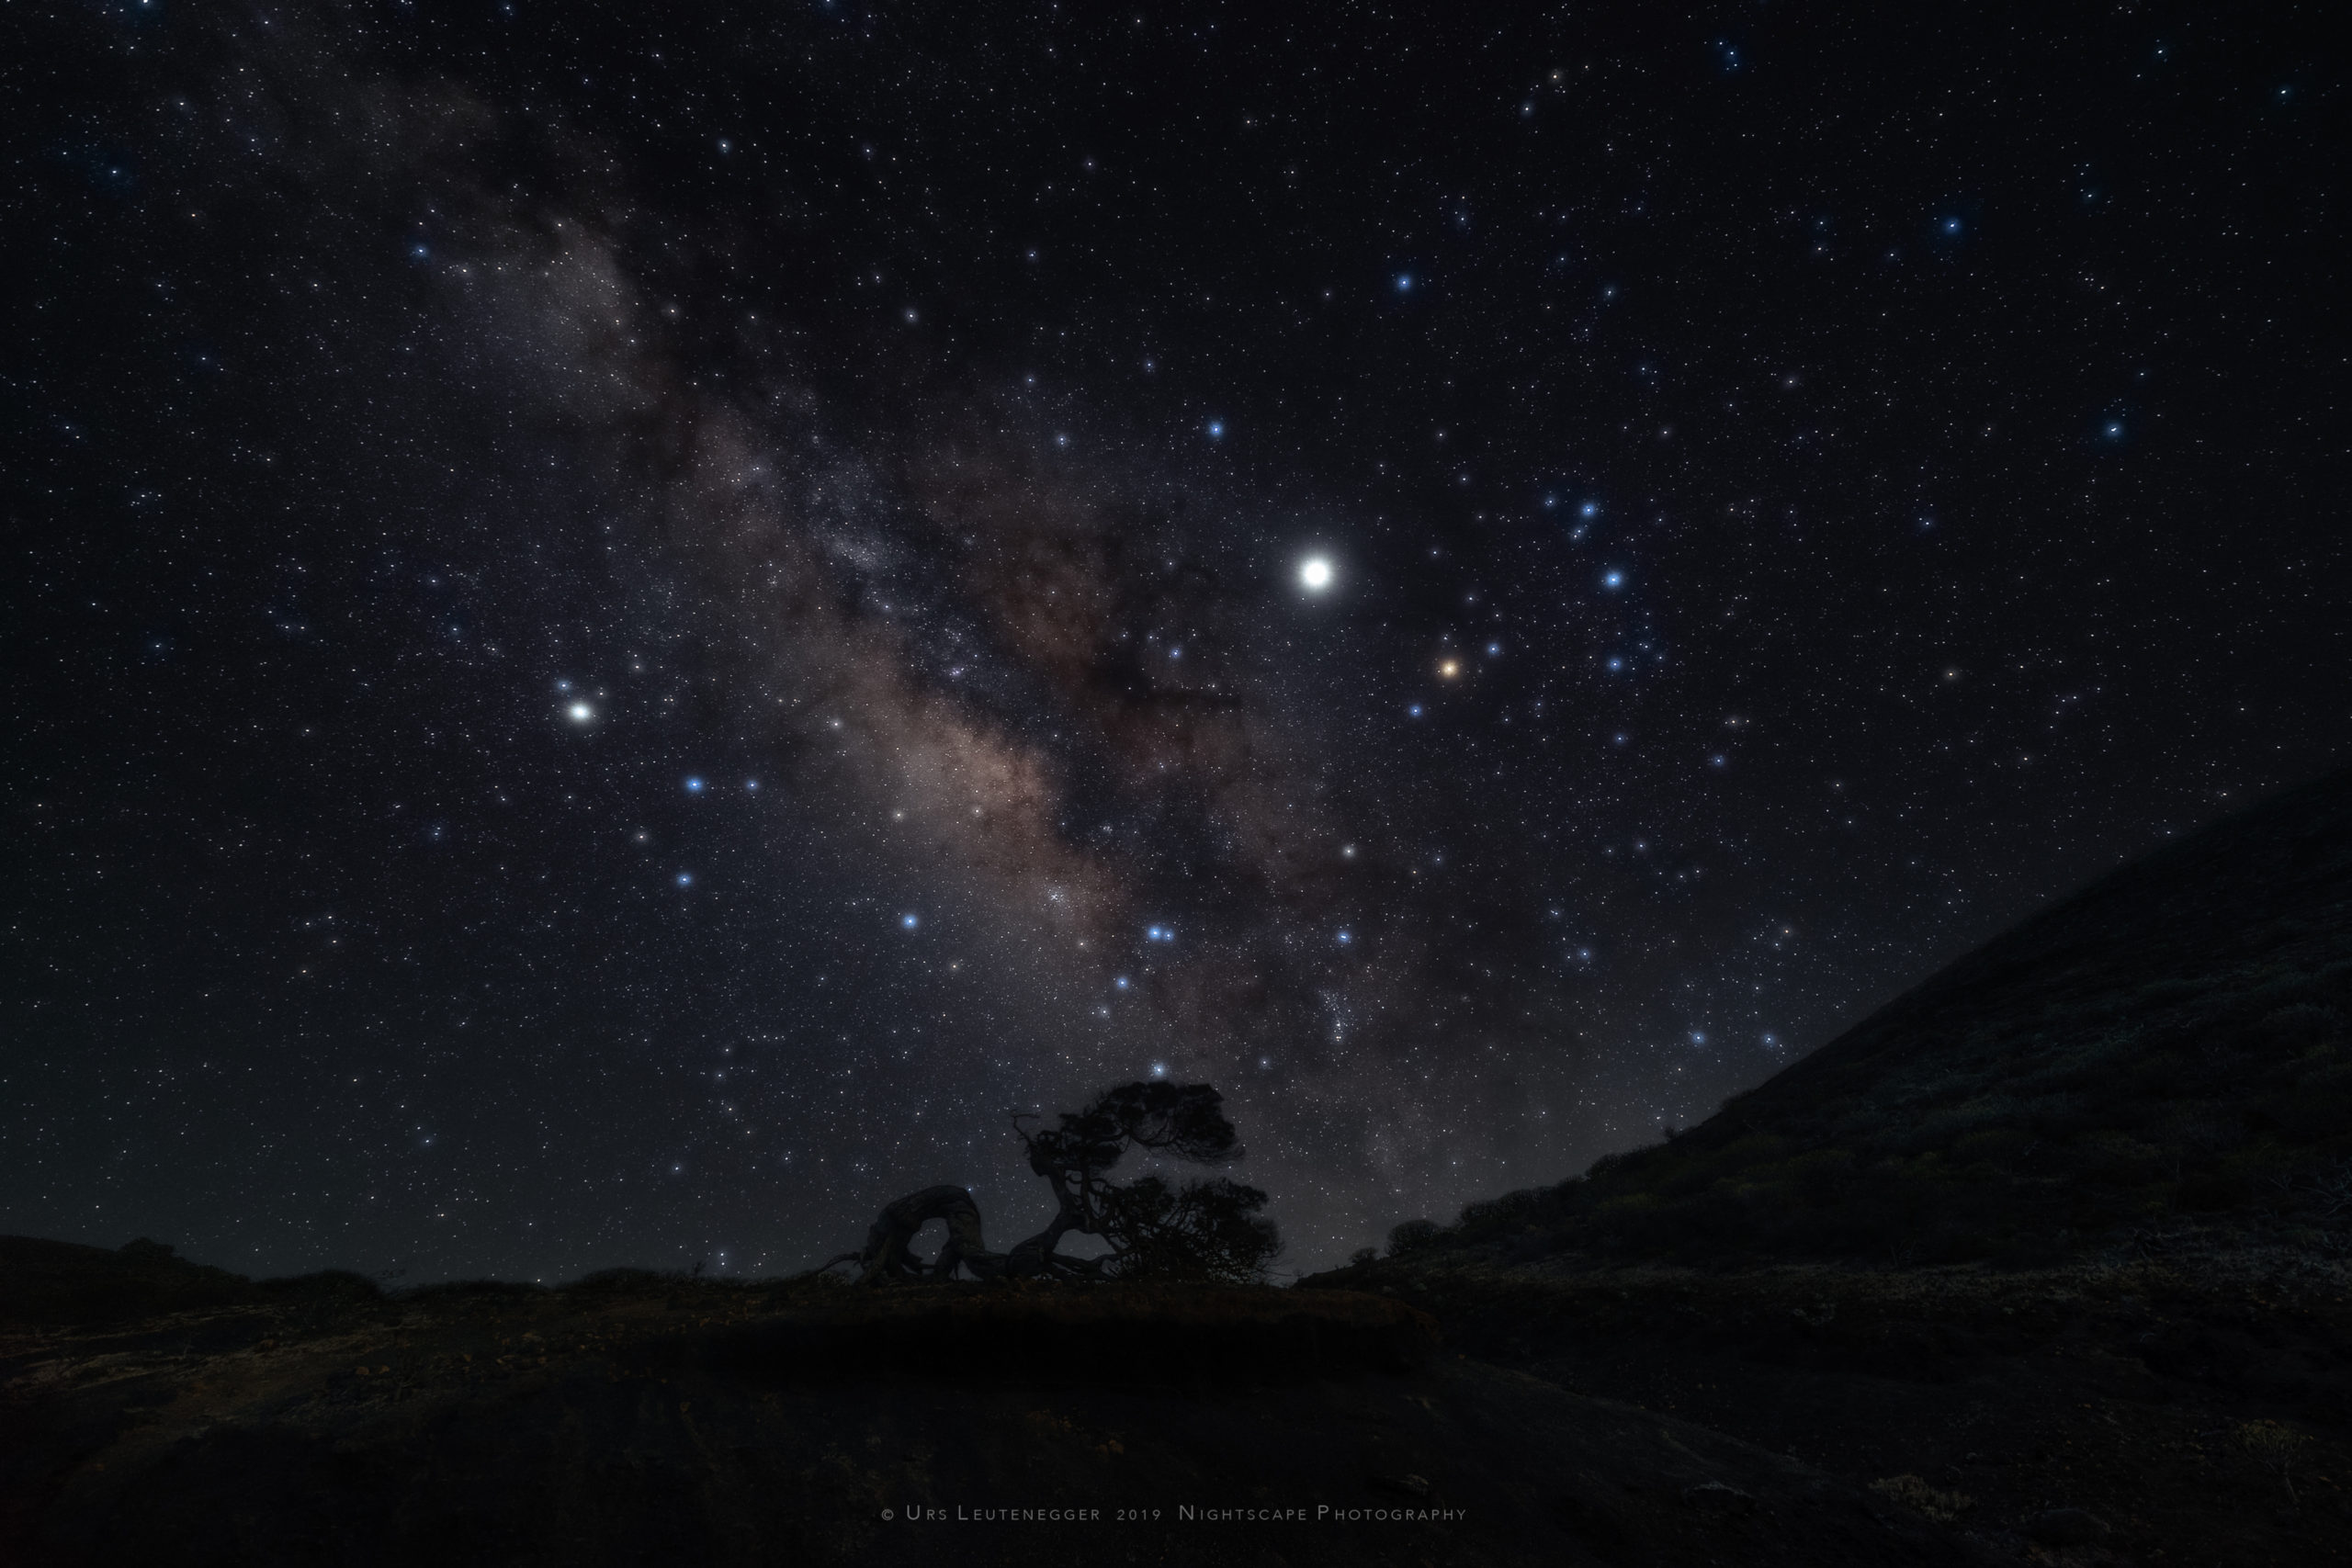 Soft focus allows for better visibility of the bright against the faint stars. Jupiter close to Antares, Scorpio; Saturn in Sagittarius, galactic center of the Milky Way. Phoenician Juniper silhouette at horizon on El Hierro.